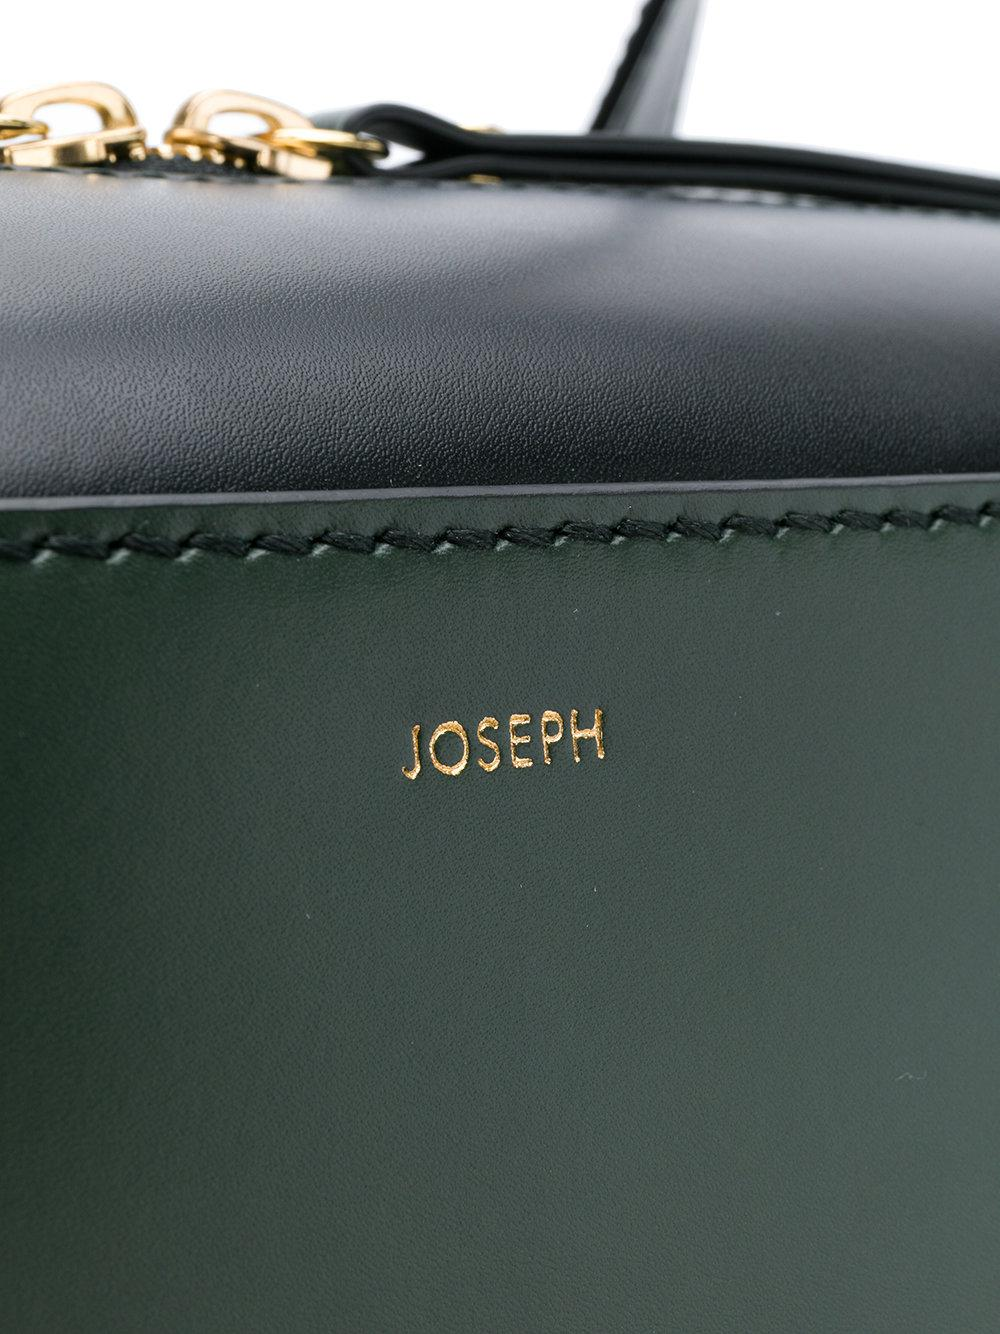 JOSEPH Leather Ryder Tote in Green